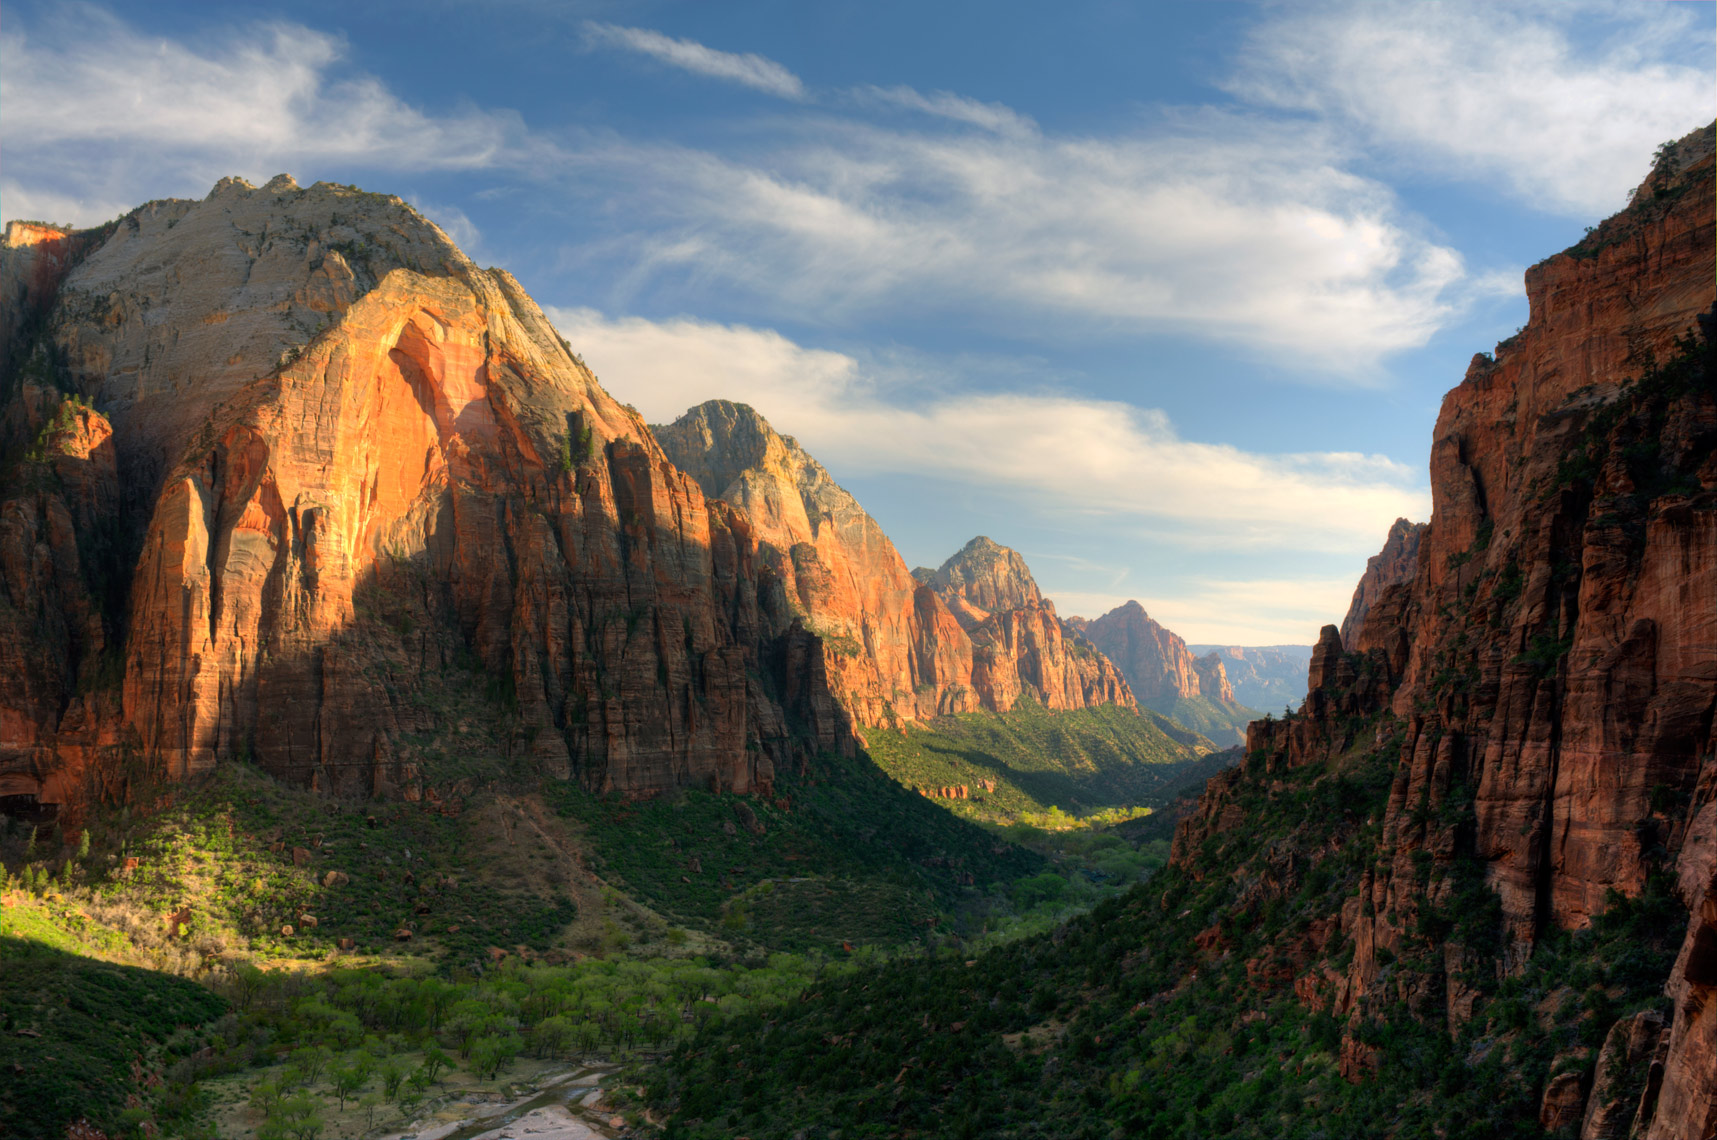 Zion Canyon from Bright Angels Landing Trail, Zion National Park, Utah